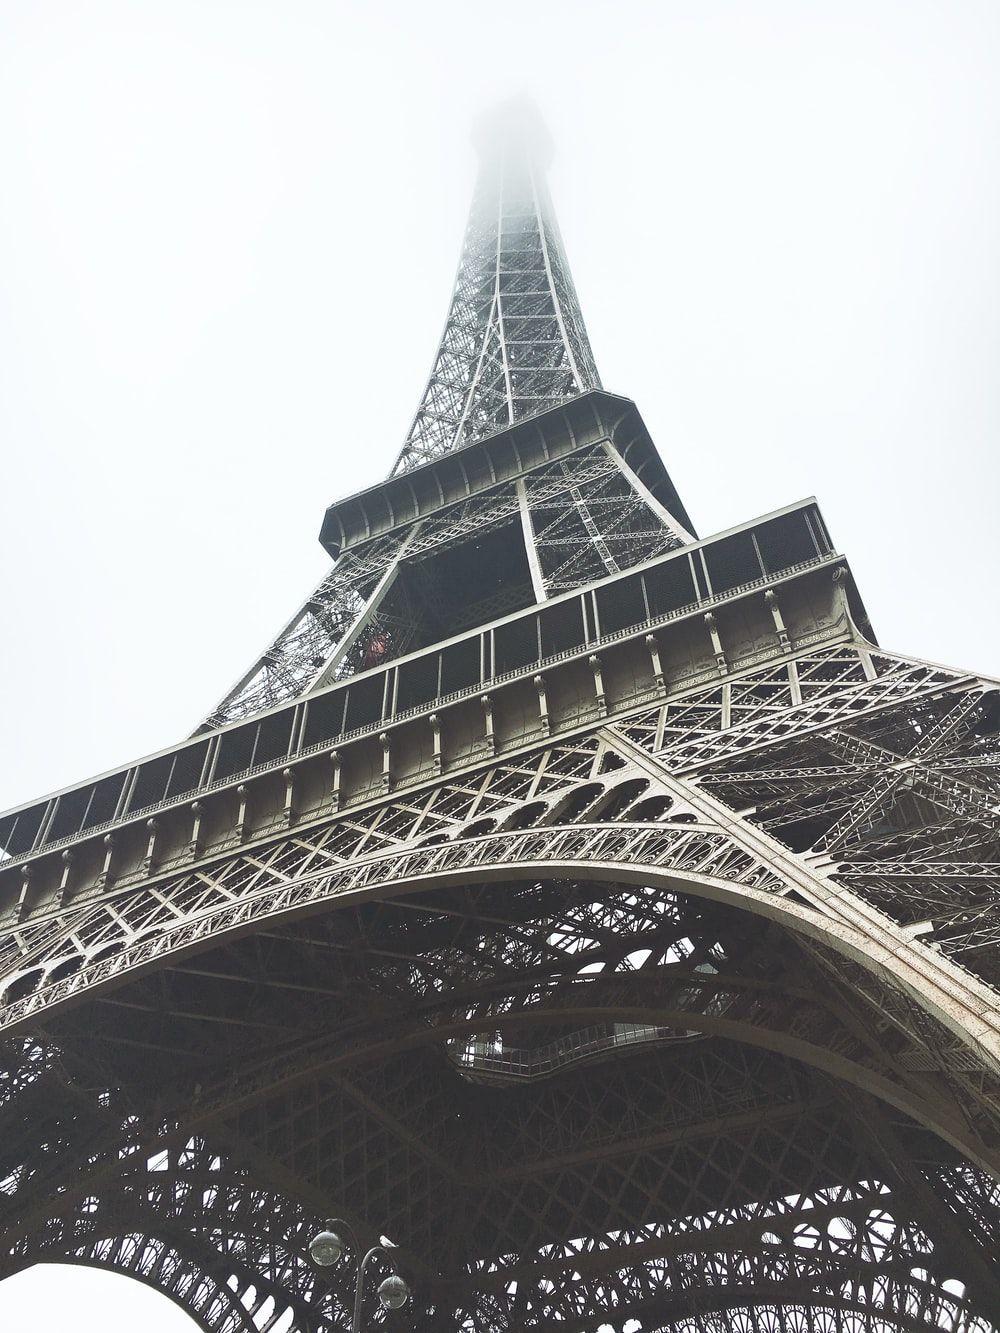 worm's-eye view of Eiffel Tower